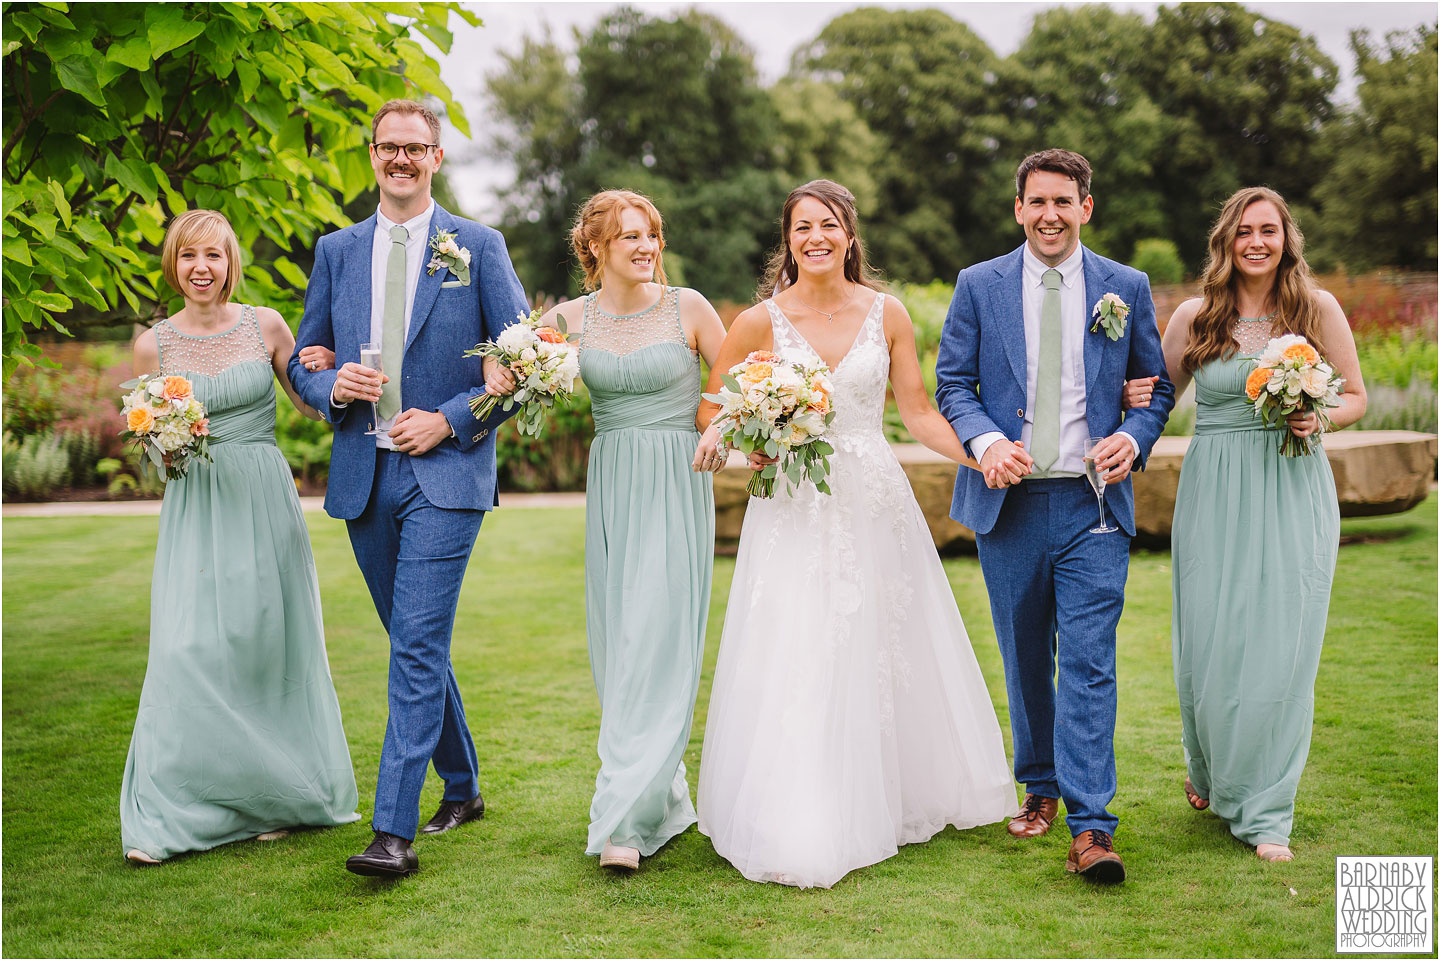 Wedding party bridesmaids and groomsmen photo at the Fig House Walled Garden at Middleton Lodge, Fig House Walled Garden Middleton Lodge Wedding Photos, Fig House Middleton Lodge Richmond, Middleton Lodge wedding photographer, Middleton Lodge Wedding Photography, Yorkshire Wedding Photographer Barnaby Aldrick